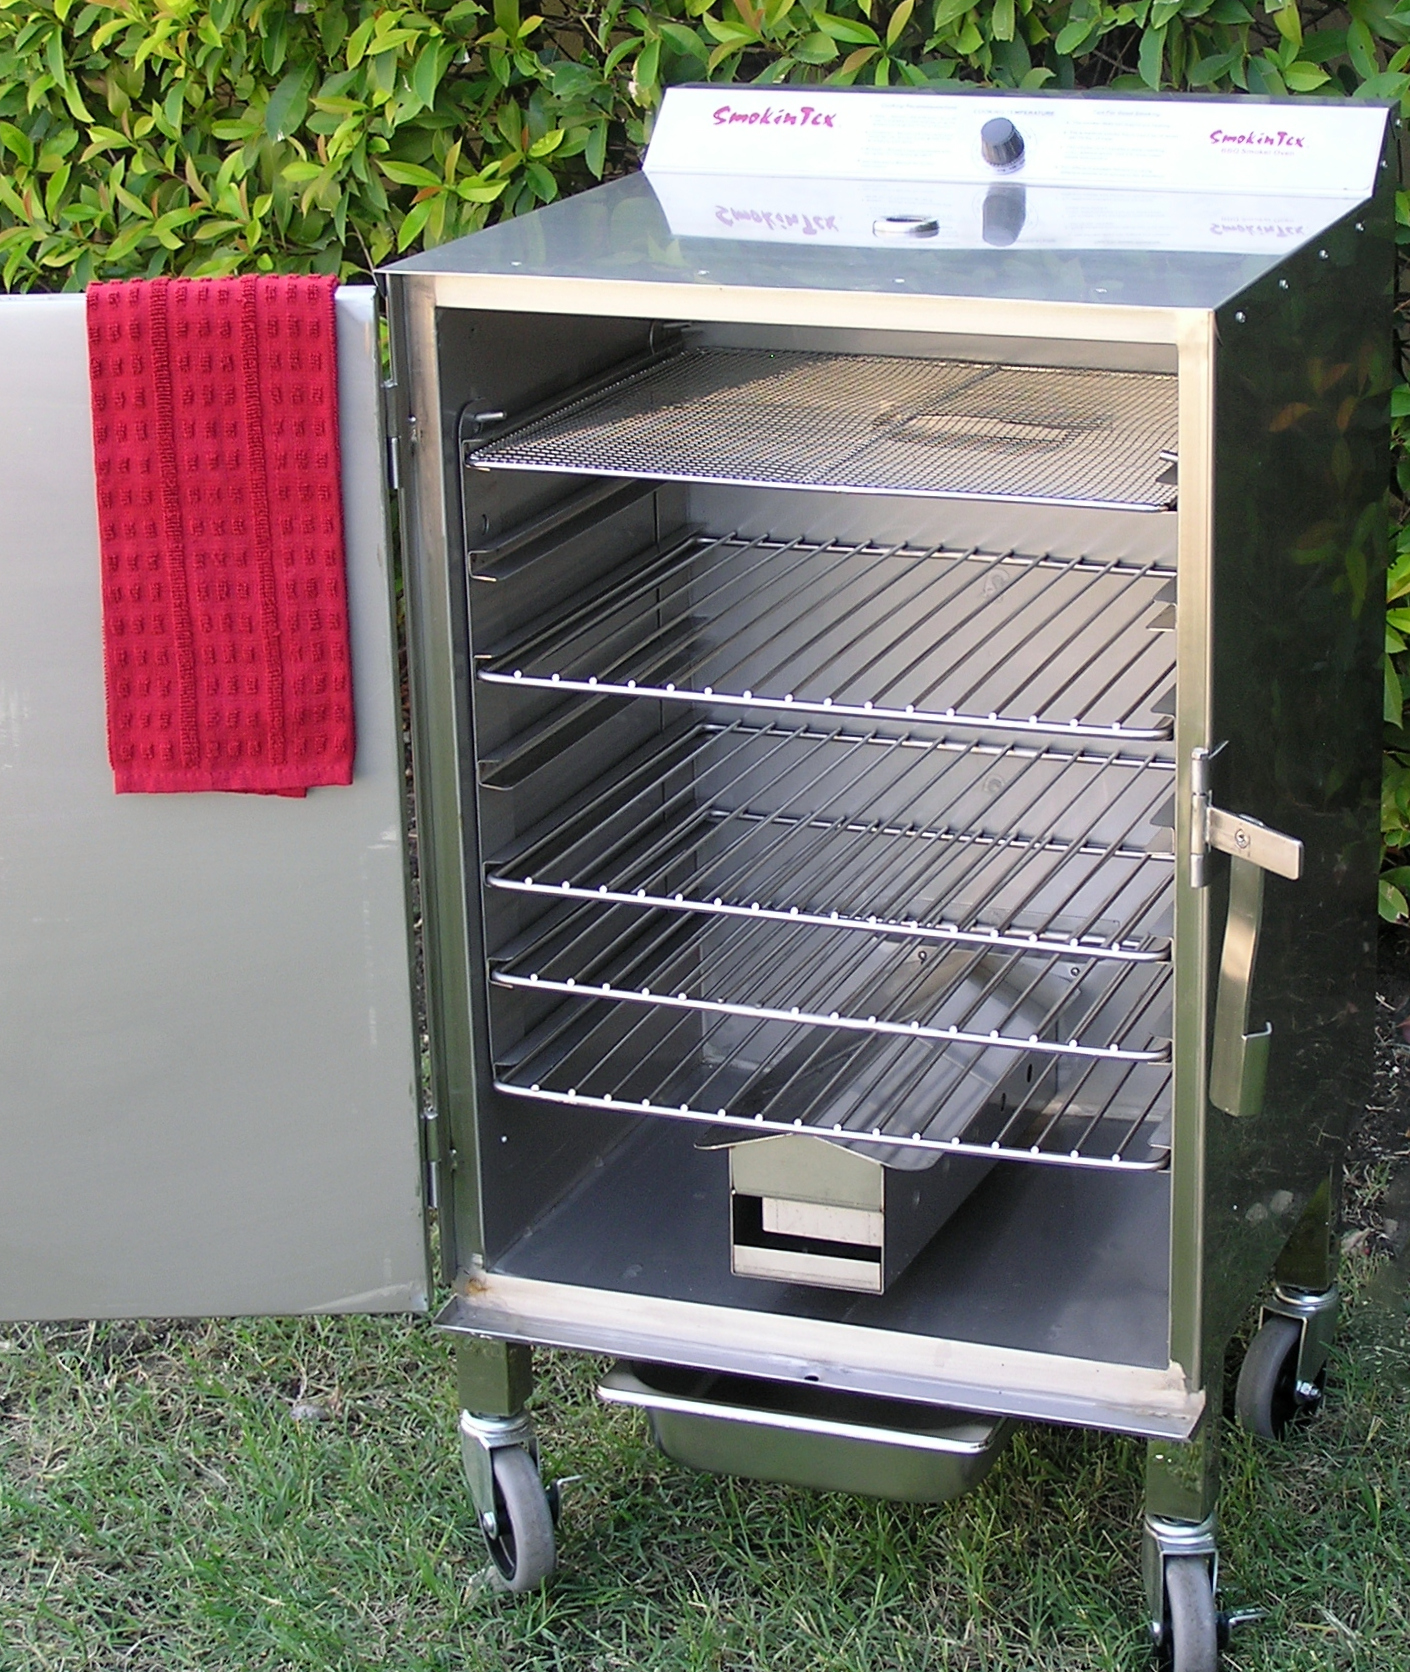 SmokinTex BBQ Electric Smoker Model 1460